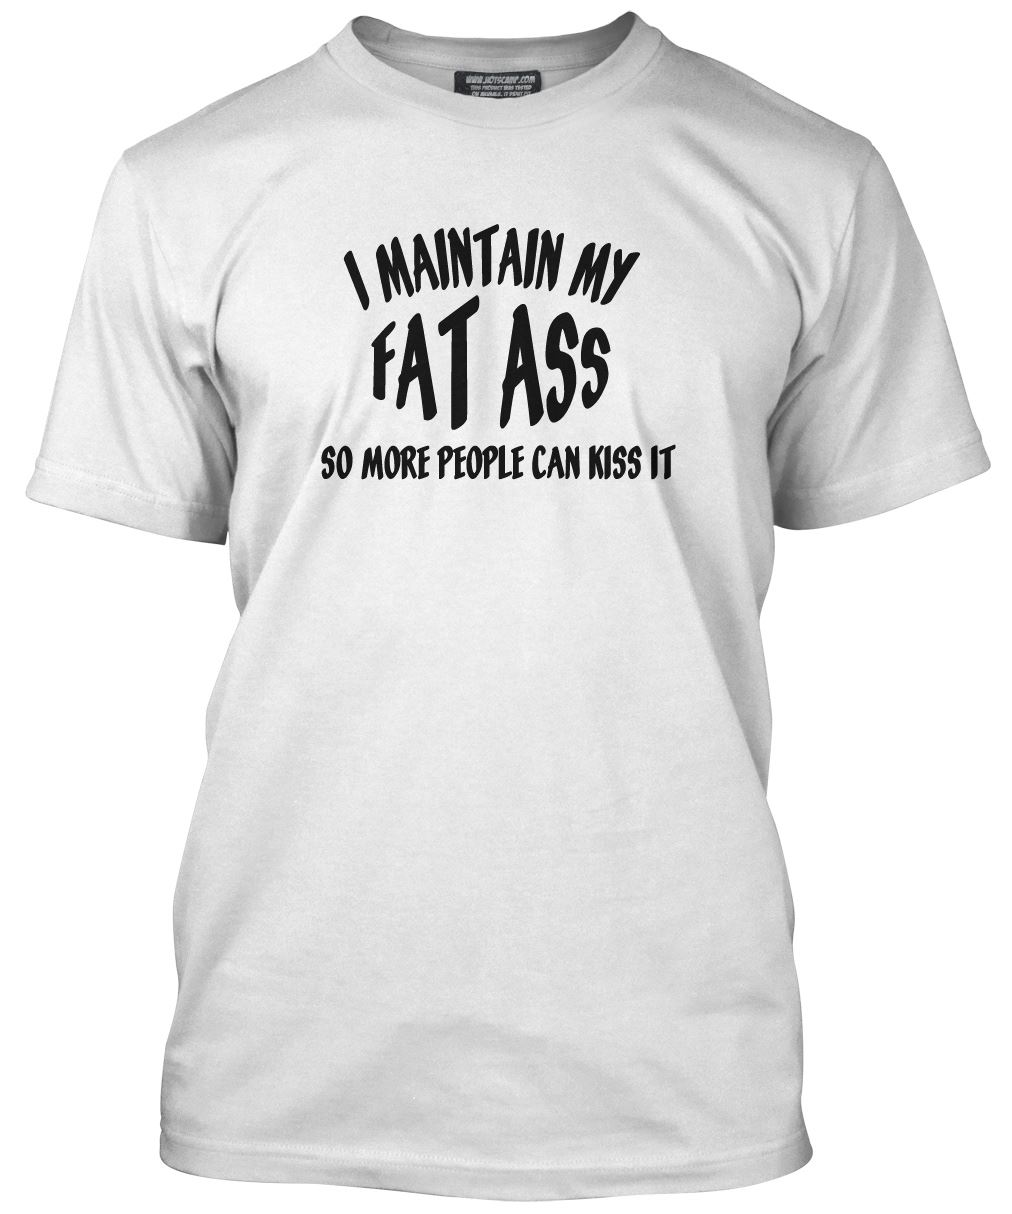 ass t shirt smart ass kissing ass